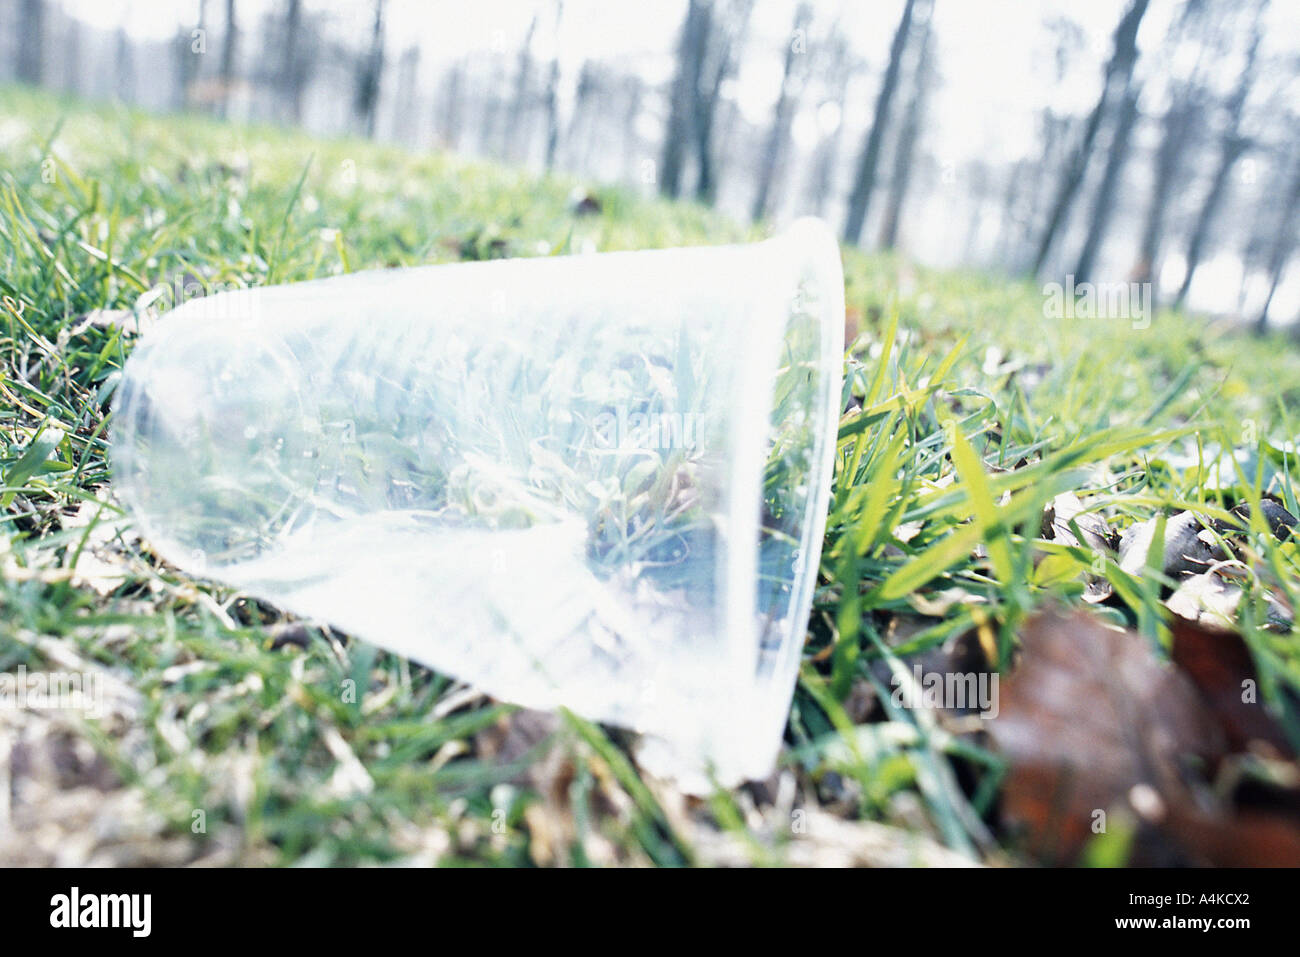 Plastic cup on grass - Stock Image